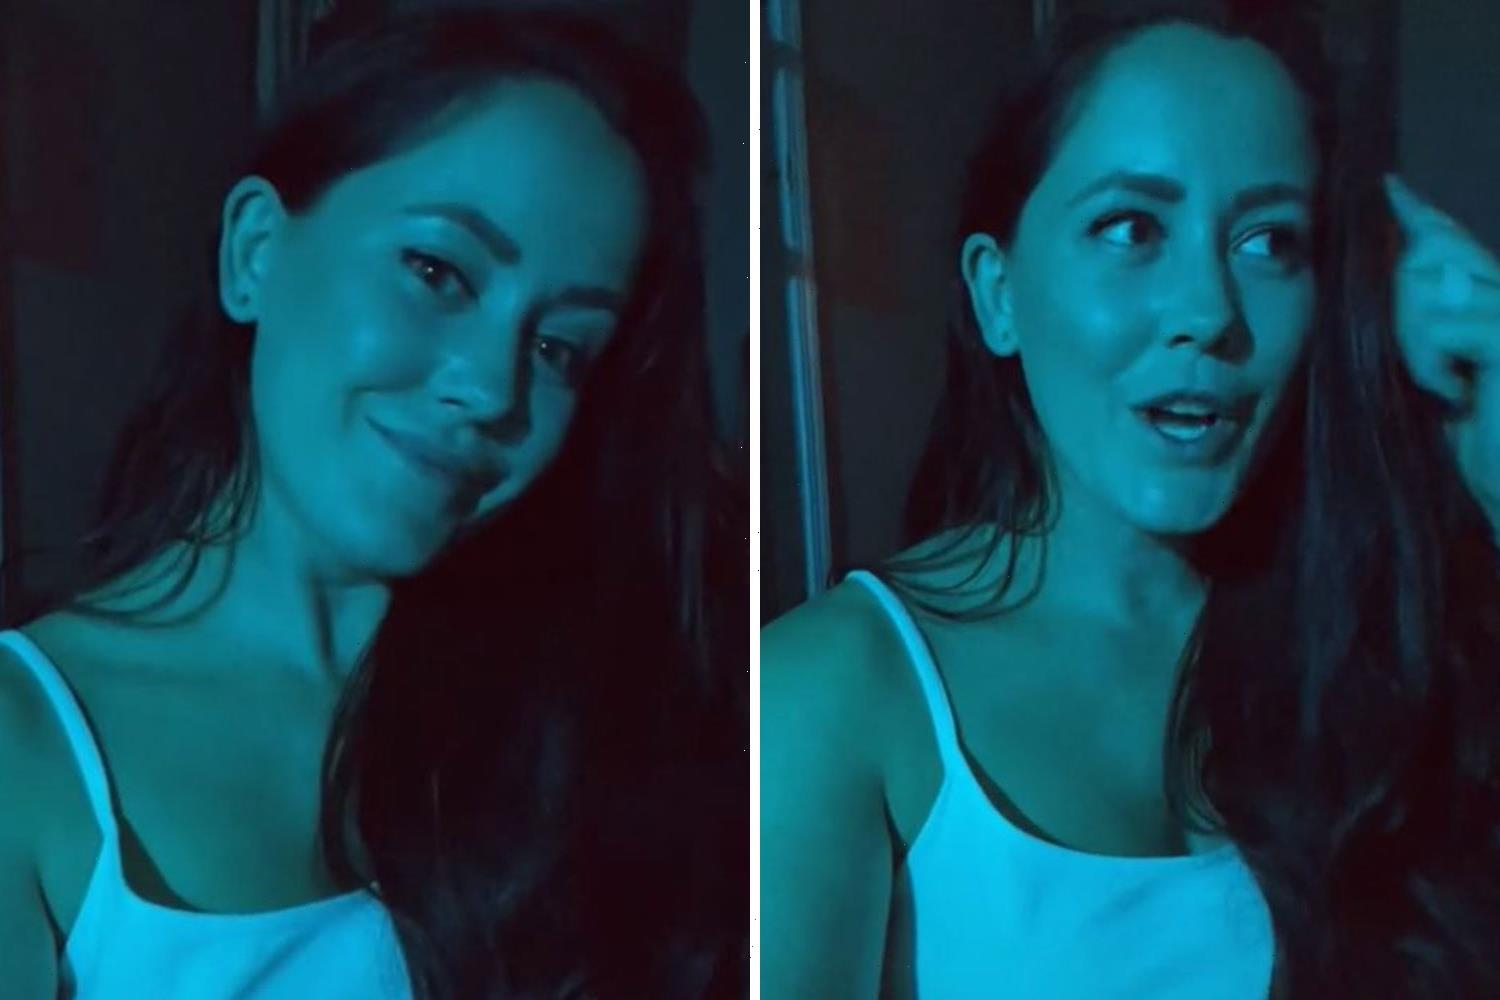 Teen Mom Jenelle Evans says 'I need some money' in new video after star admitted she has 'bad credit'